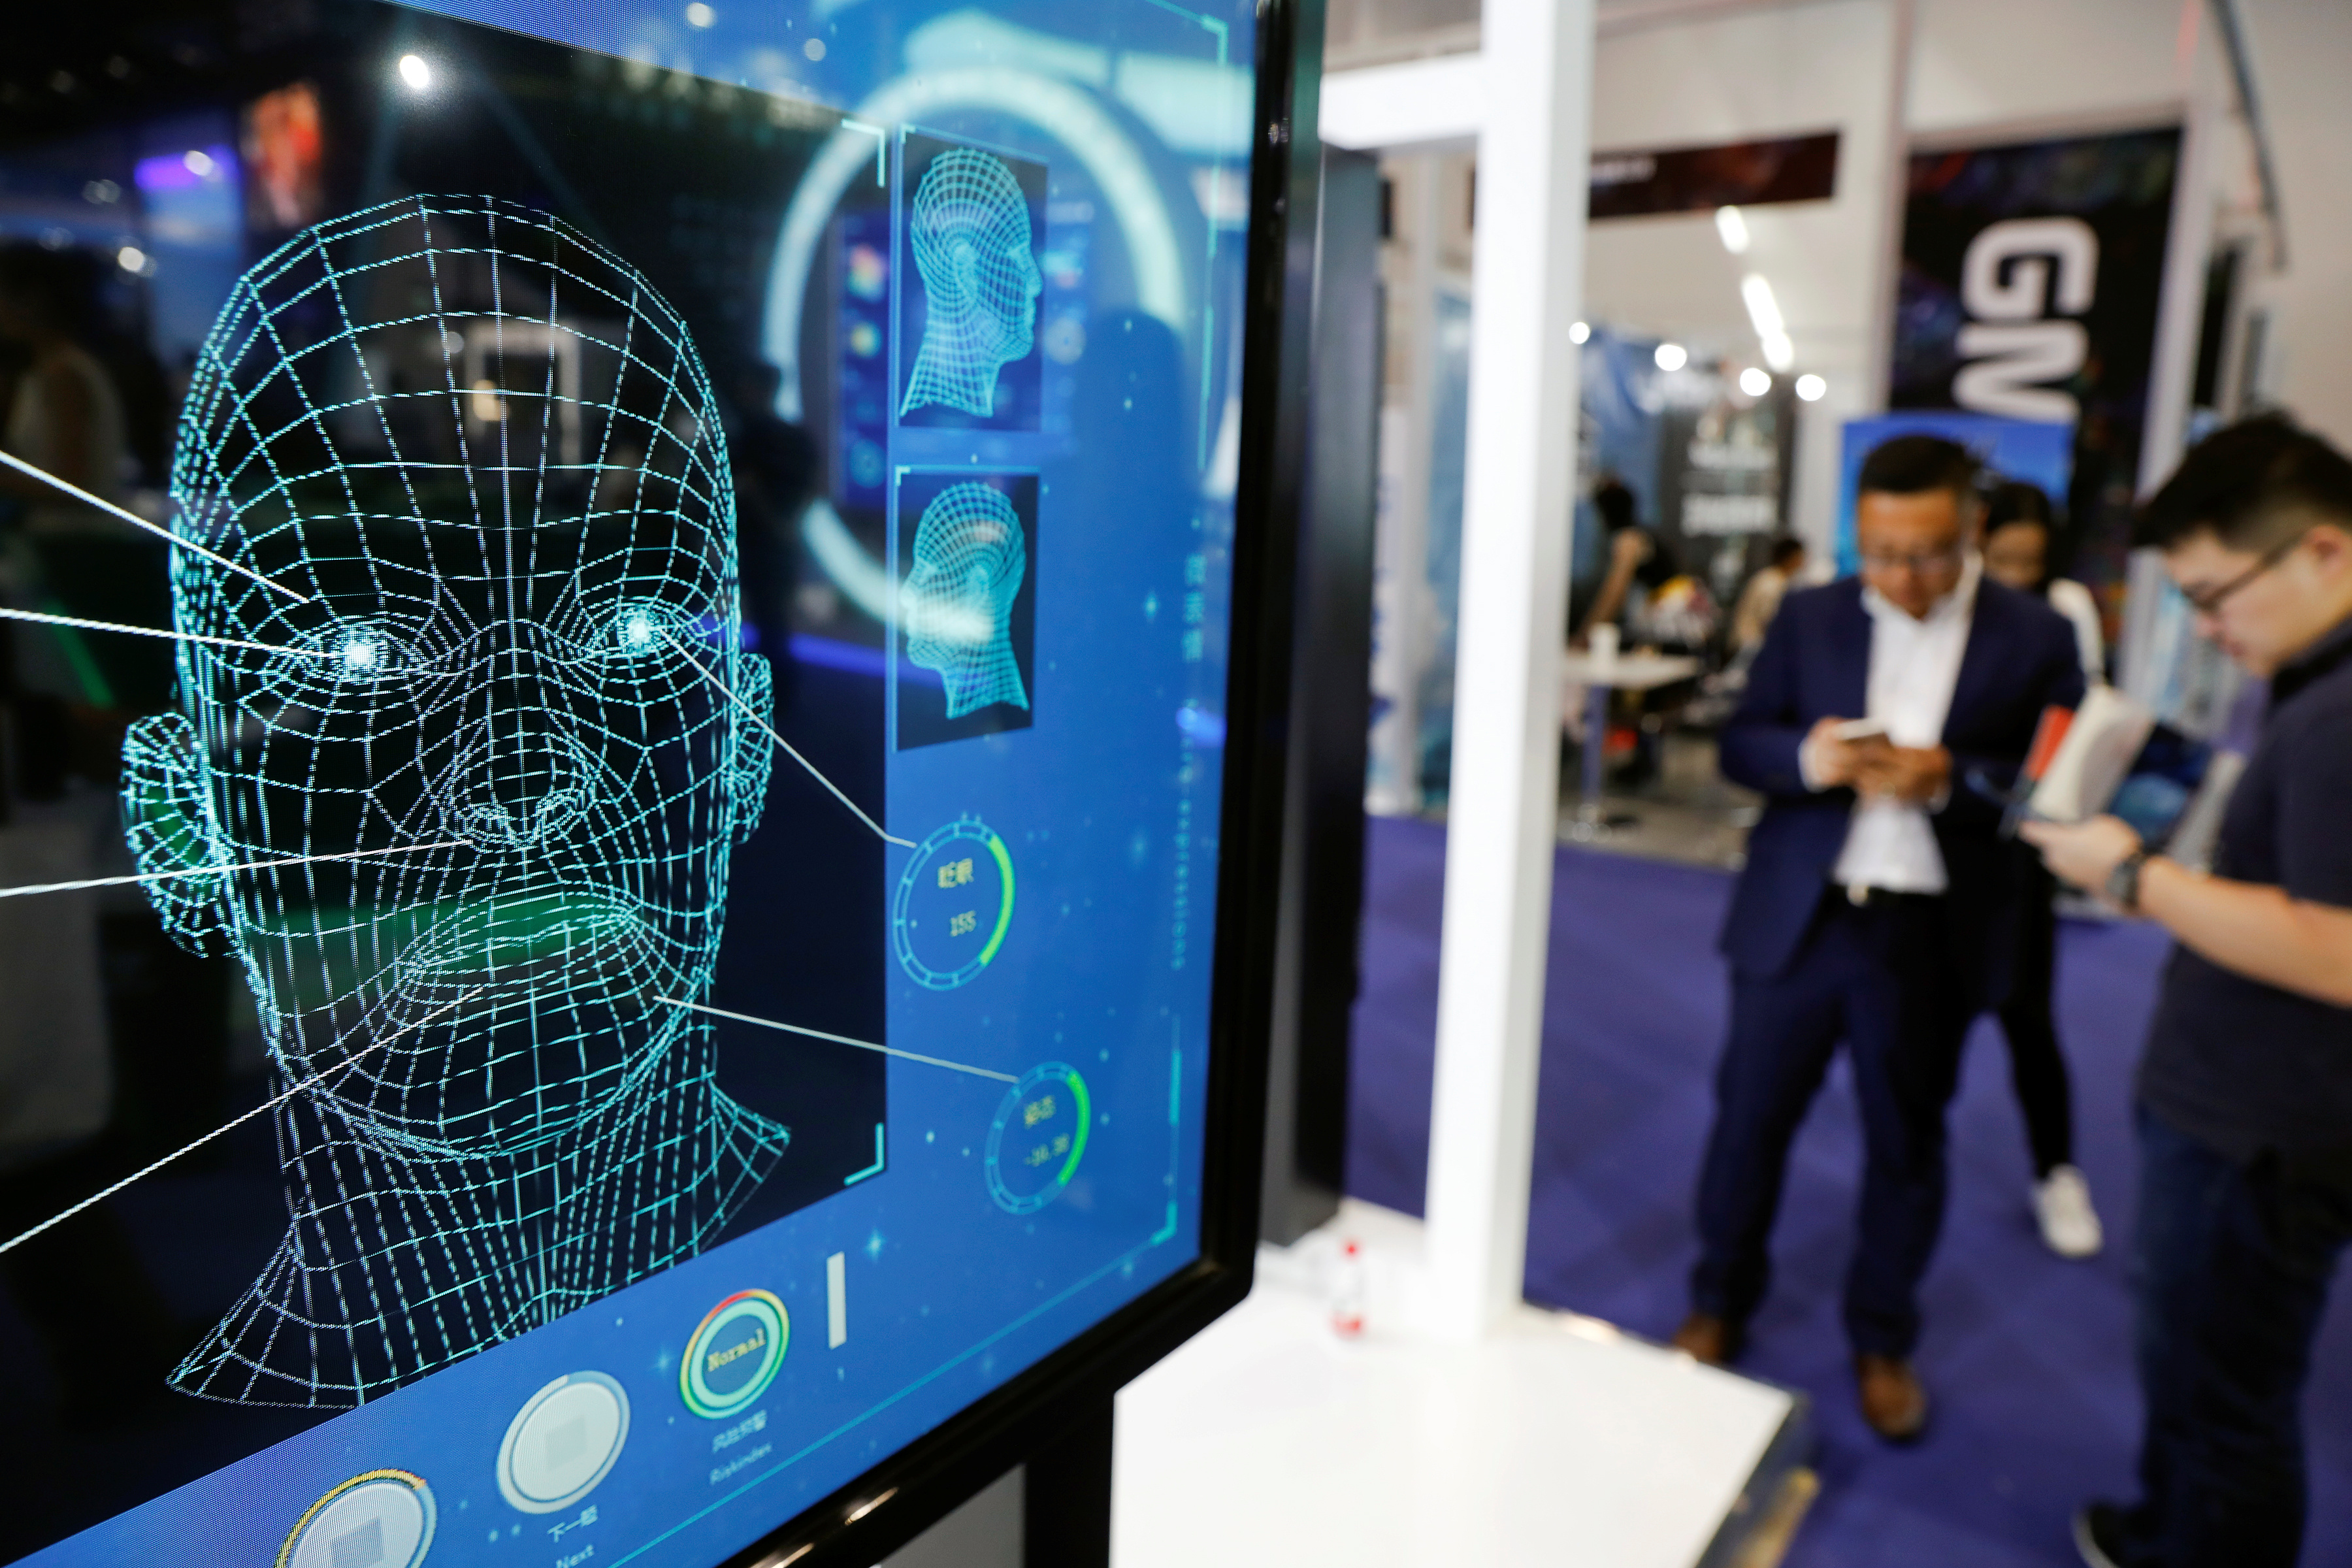 Visitors check their phones behind the screen advertising facial recognition software during Global Mobile Internet Conference (GMIC) at the National Convention in Beijing, China April 27, 2018. REUTERS/Damir Sagolj